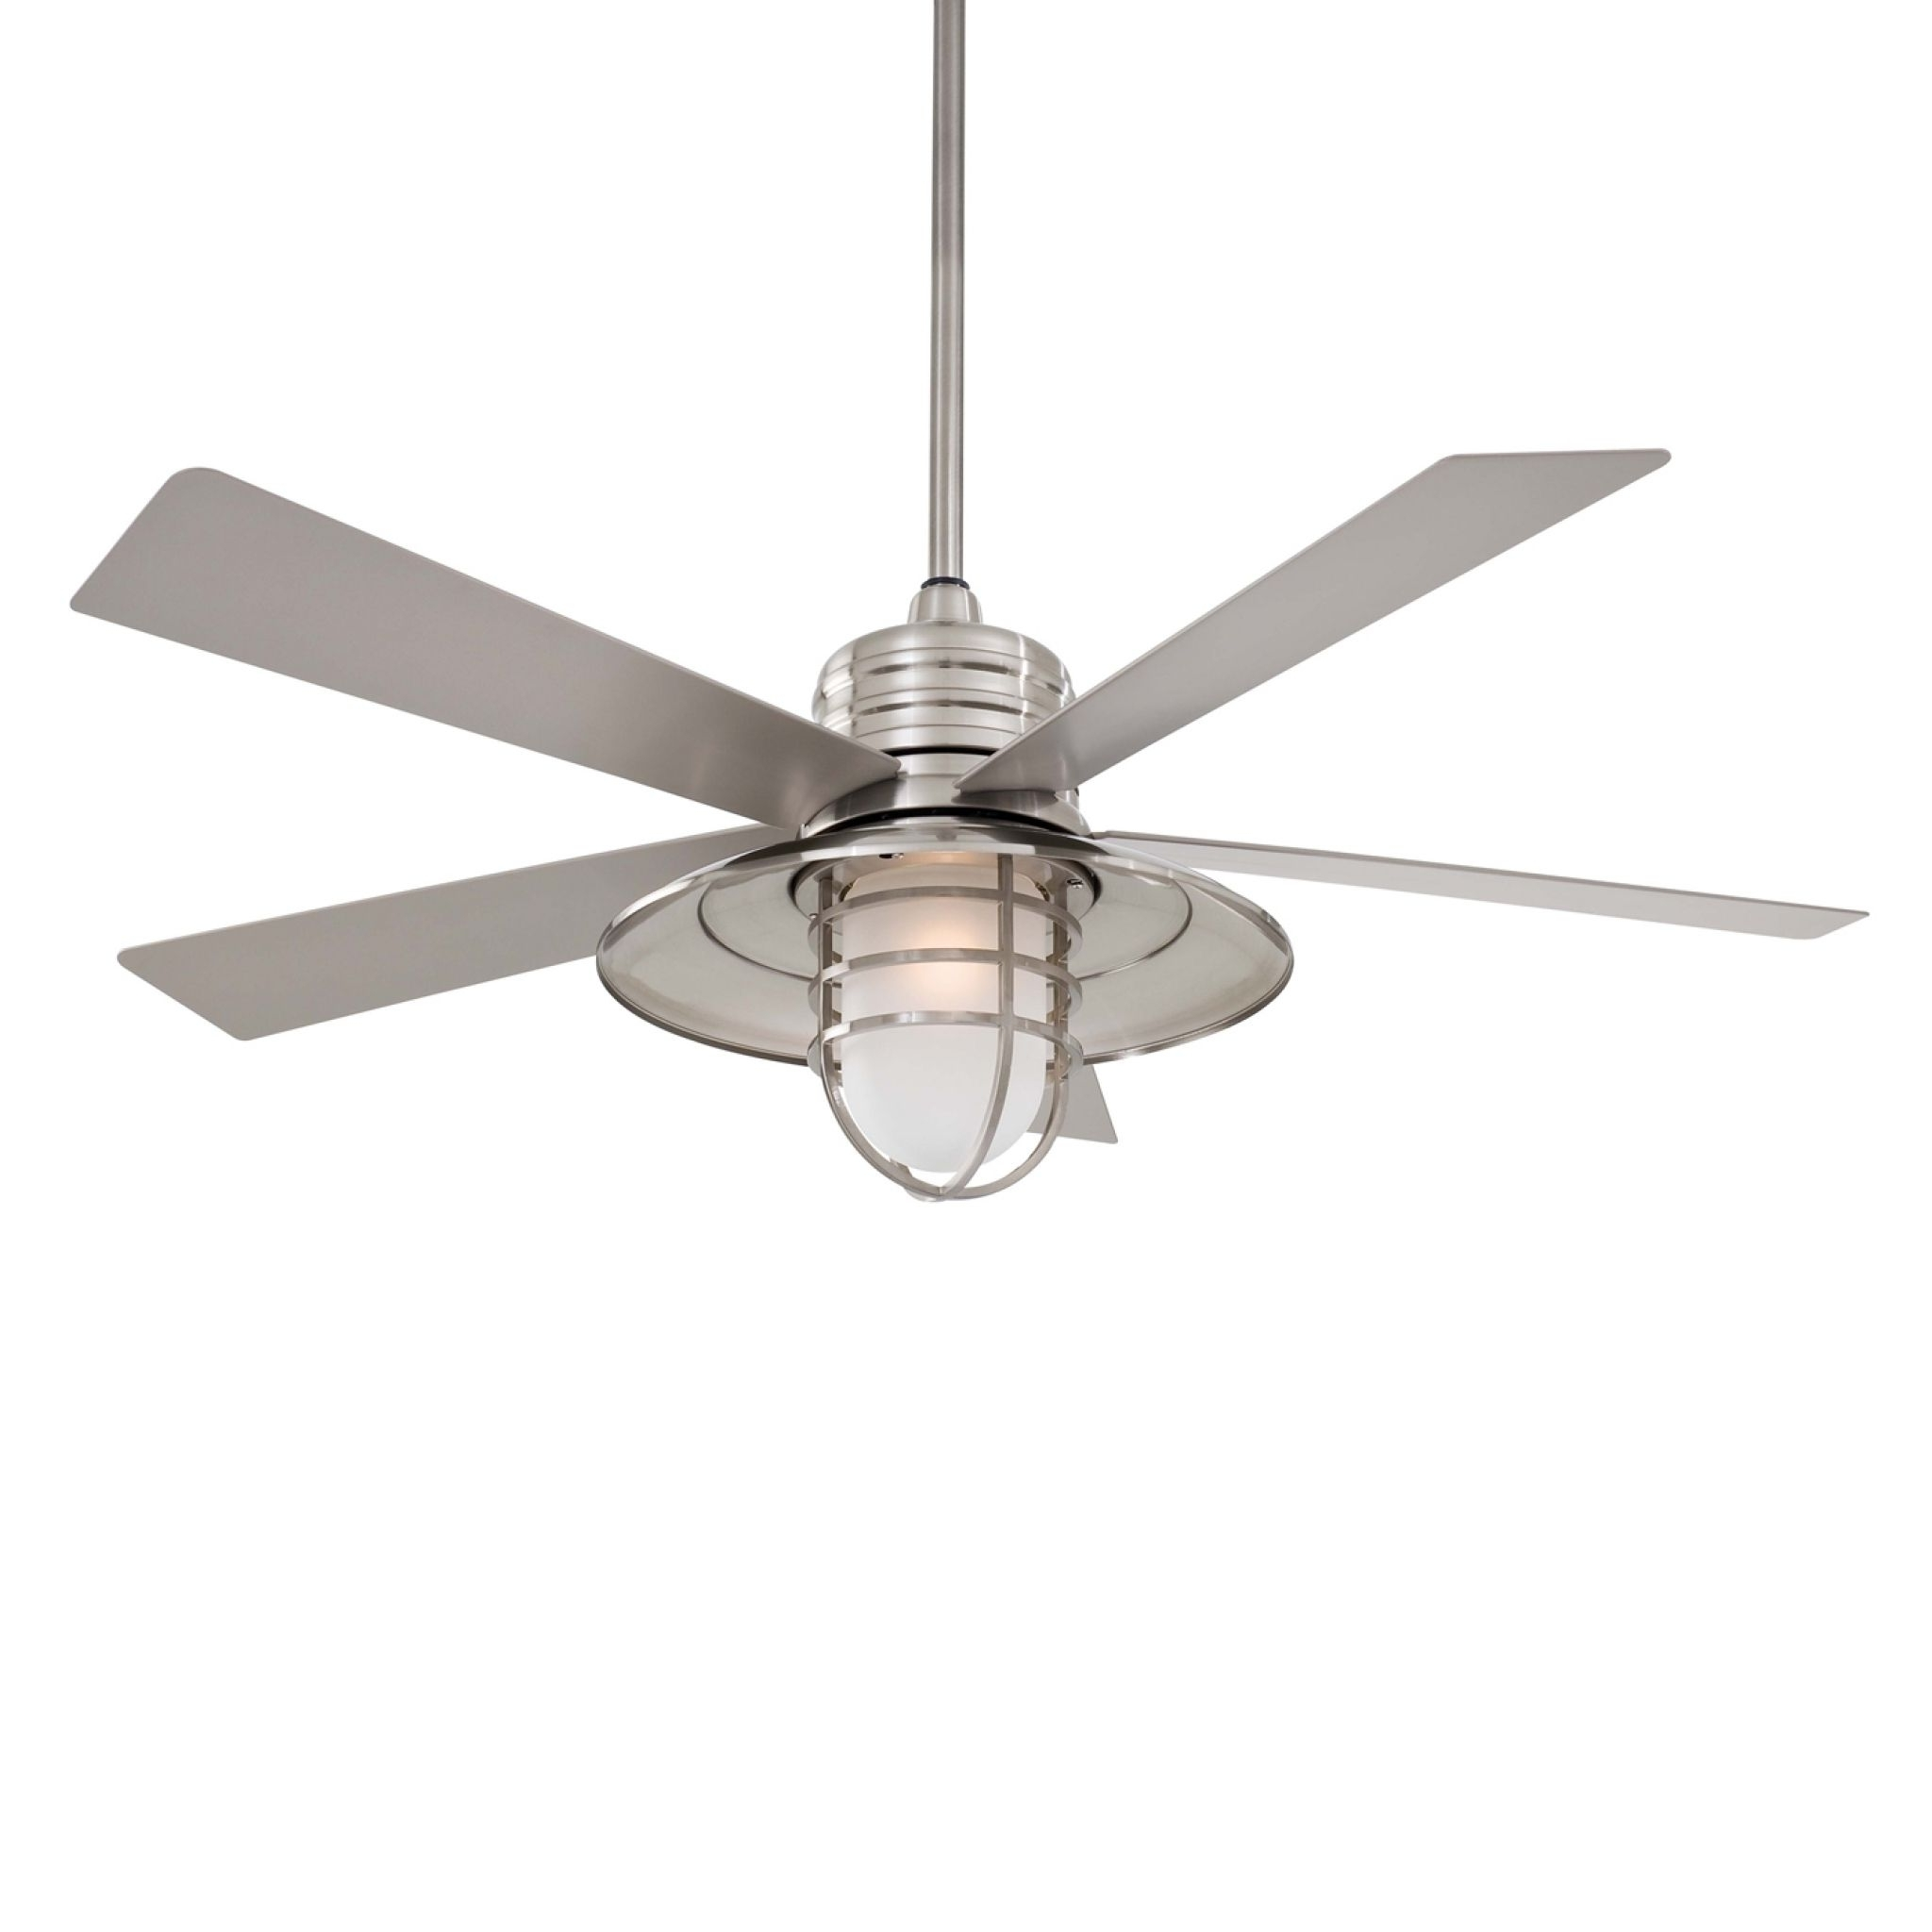 Small Outdoor Ceiling Fans With Lights With Well Known Small Outdoor Ceiling Fan With Light – Best Paint For Interior Walls (View 2 of 20)